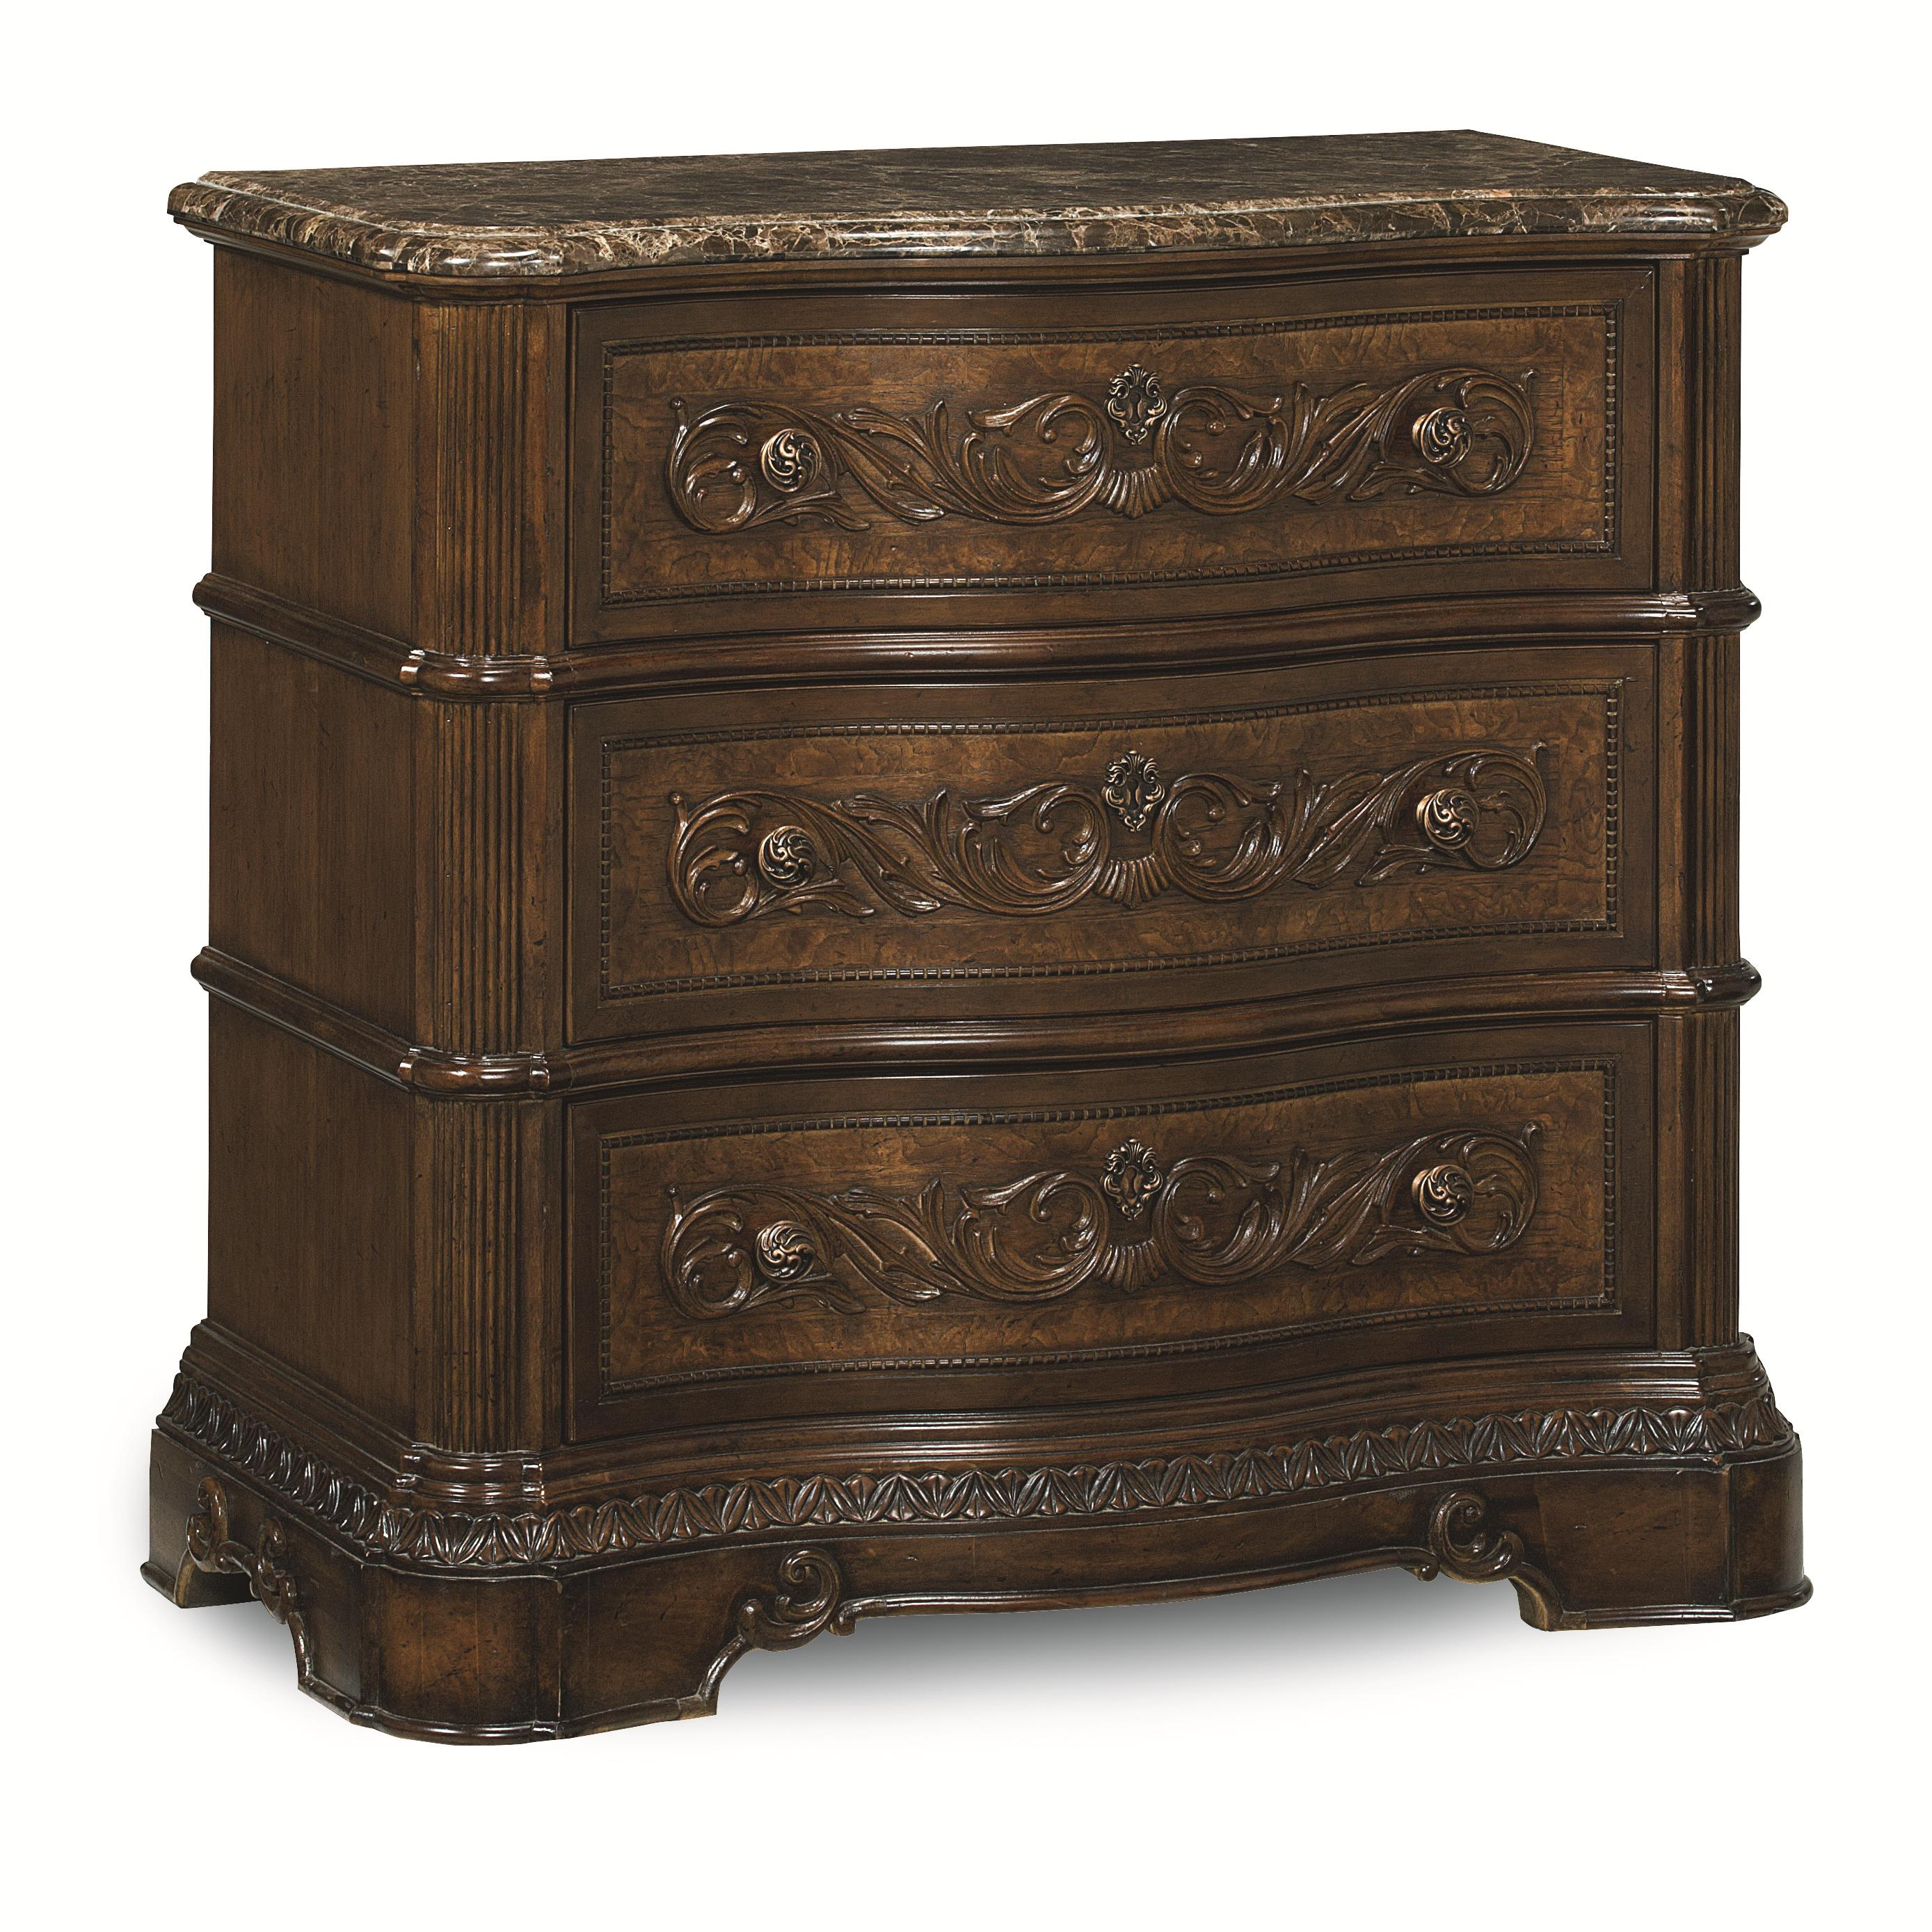 Legacy Classic Pemberleigh Bedside Chest with Marble Top - Item Number: 3100-3200